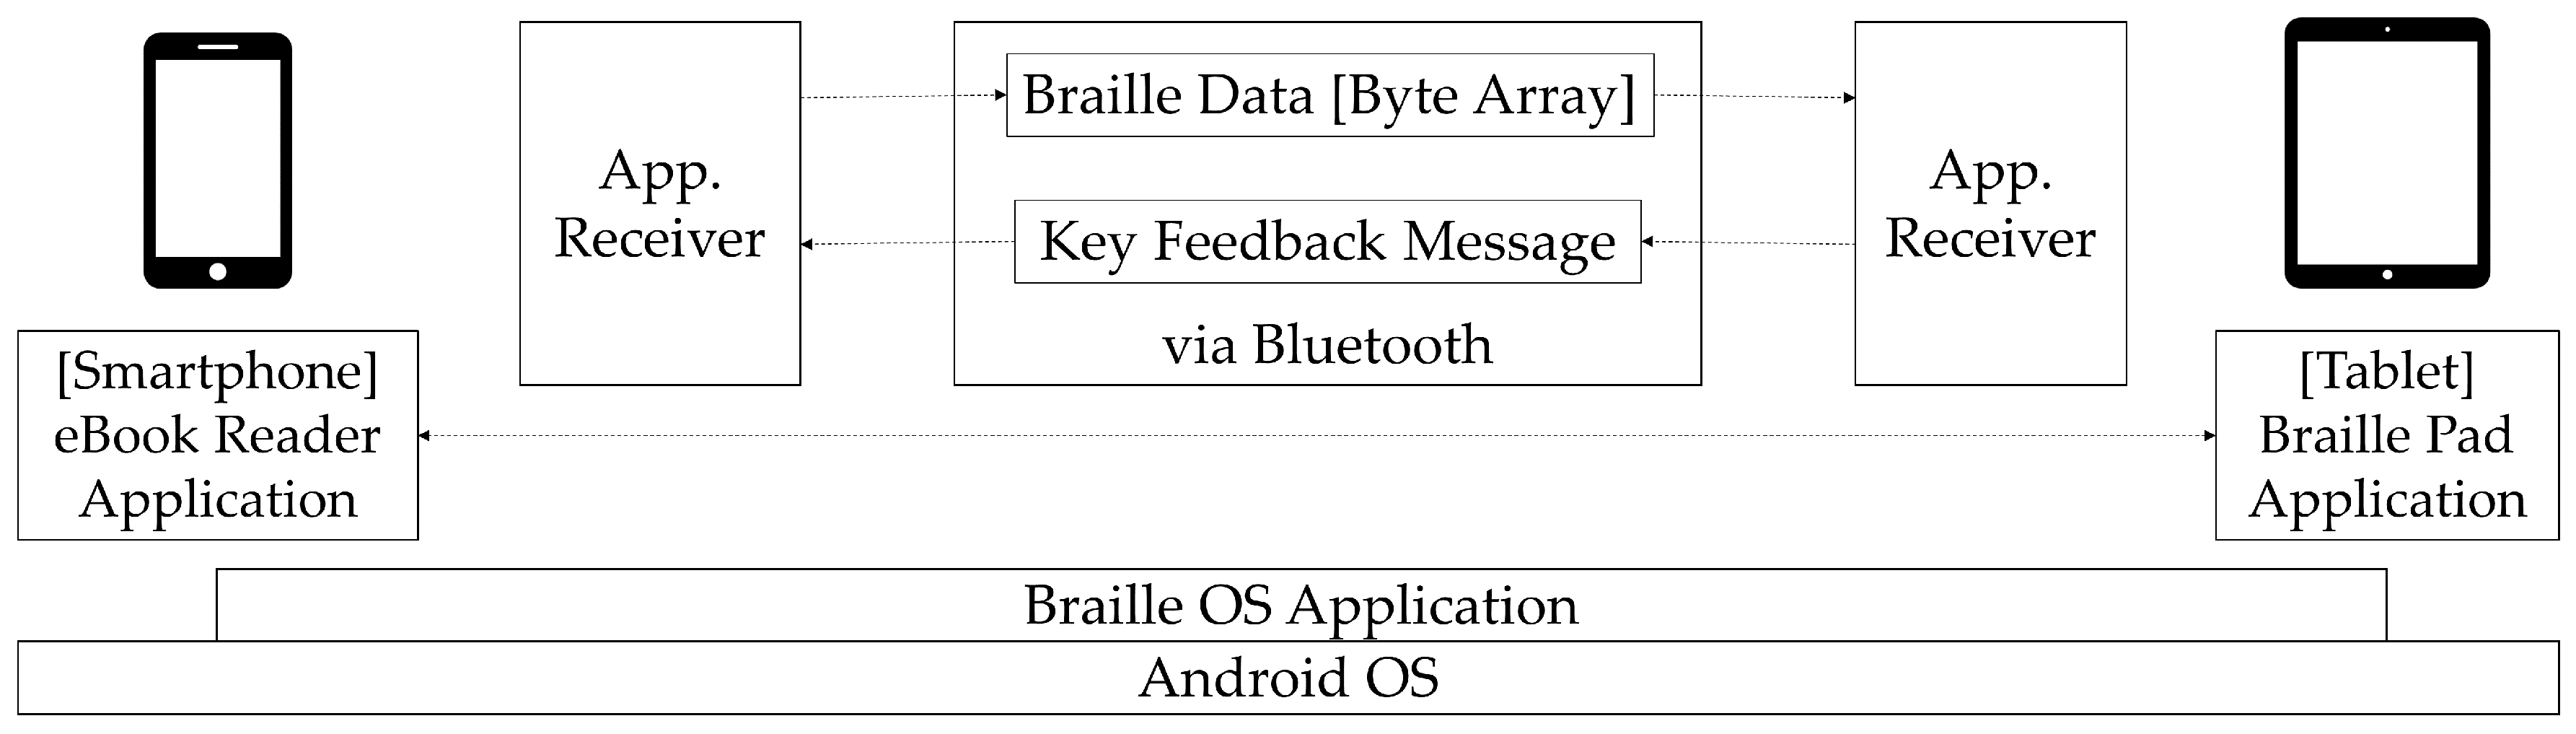 Play Audio From Byte Array Android